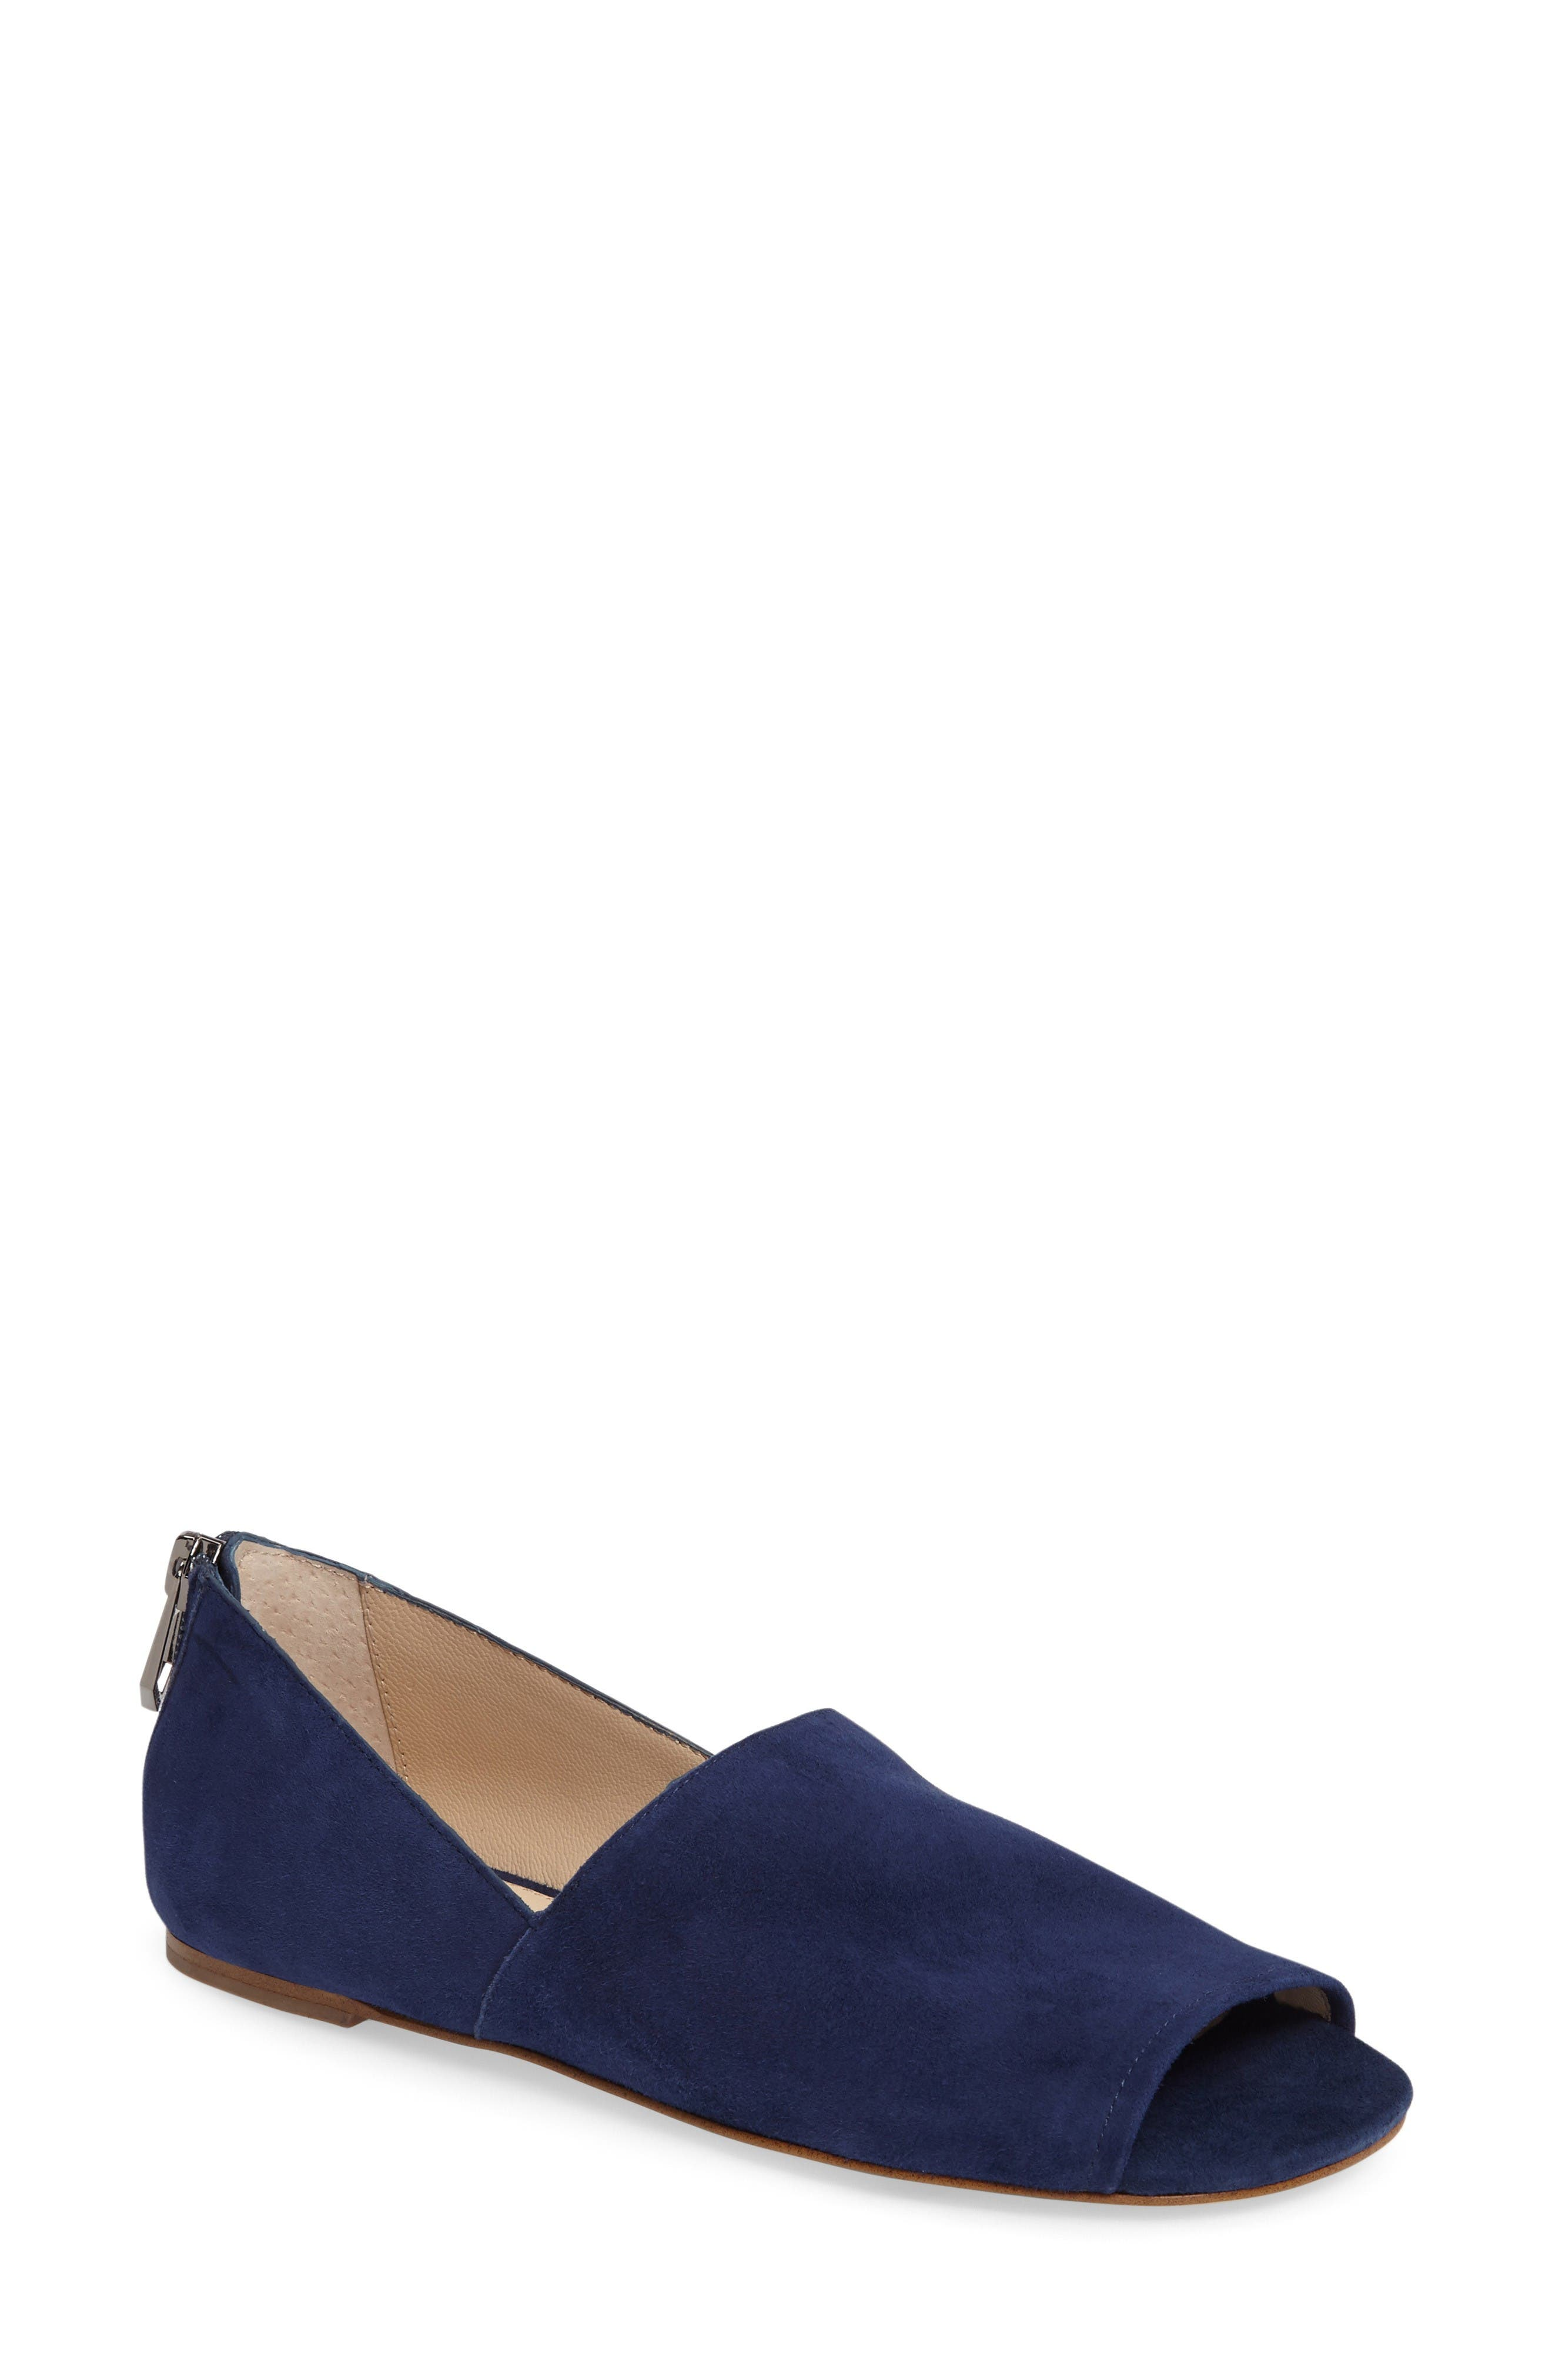 Maxine Peep Toe Flat,                         Main,                         color, Navy